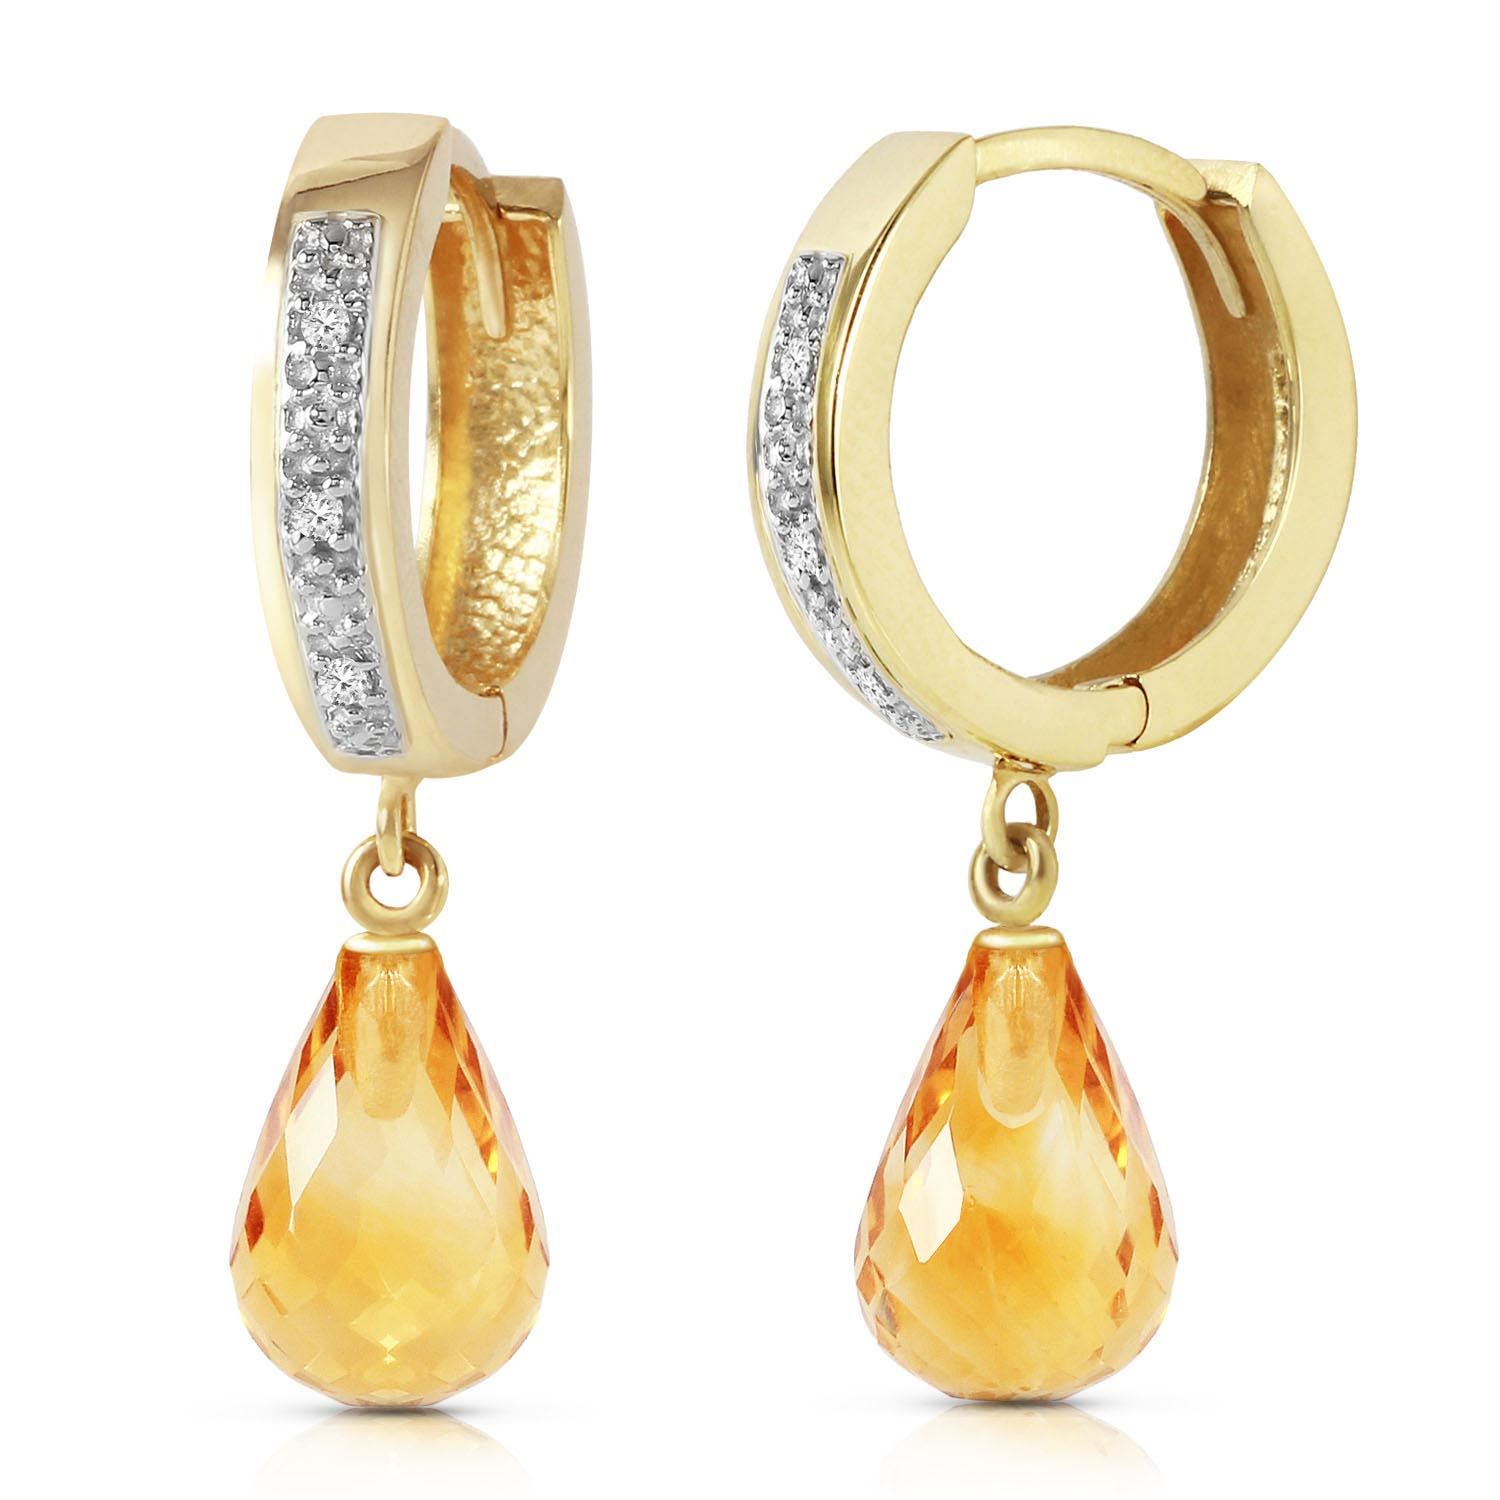 Diamond and Citrine Earrings in 9ct Gold